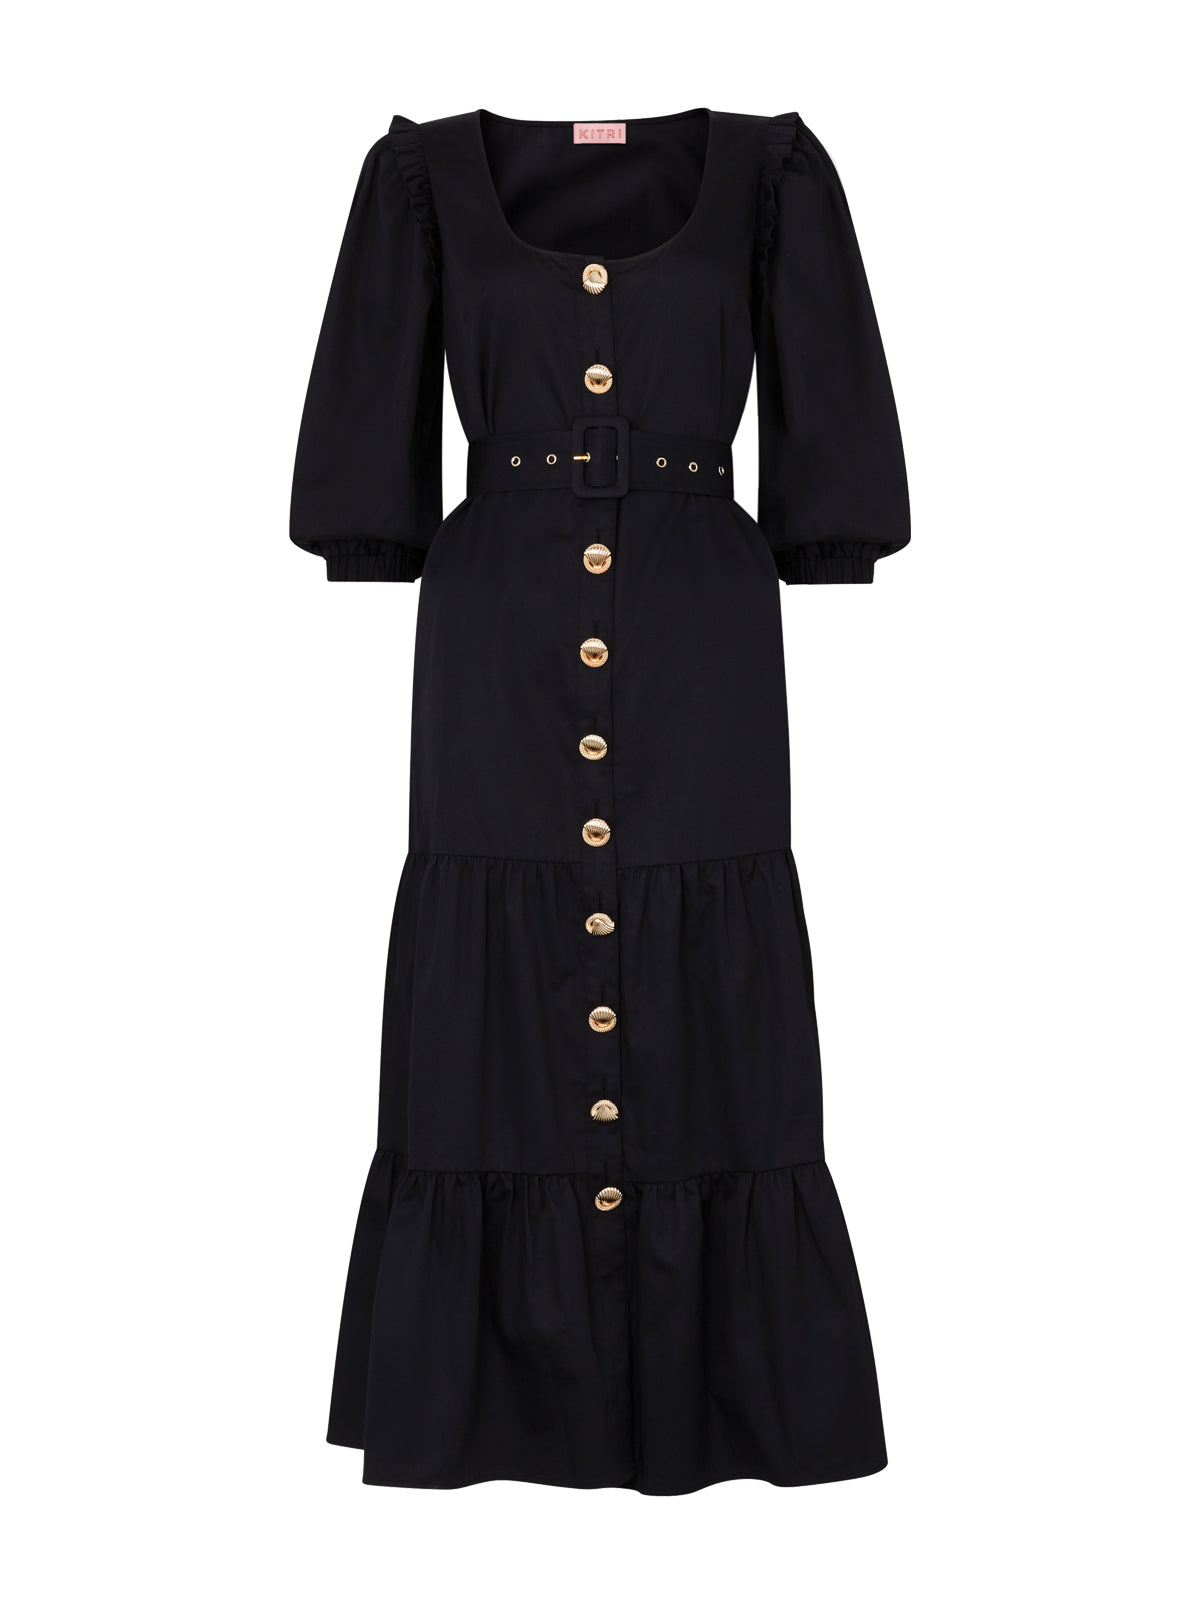 Pre-order: Ninette Black Shirt Dress